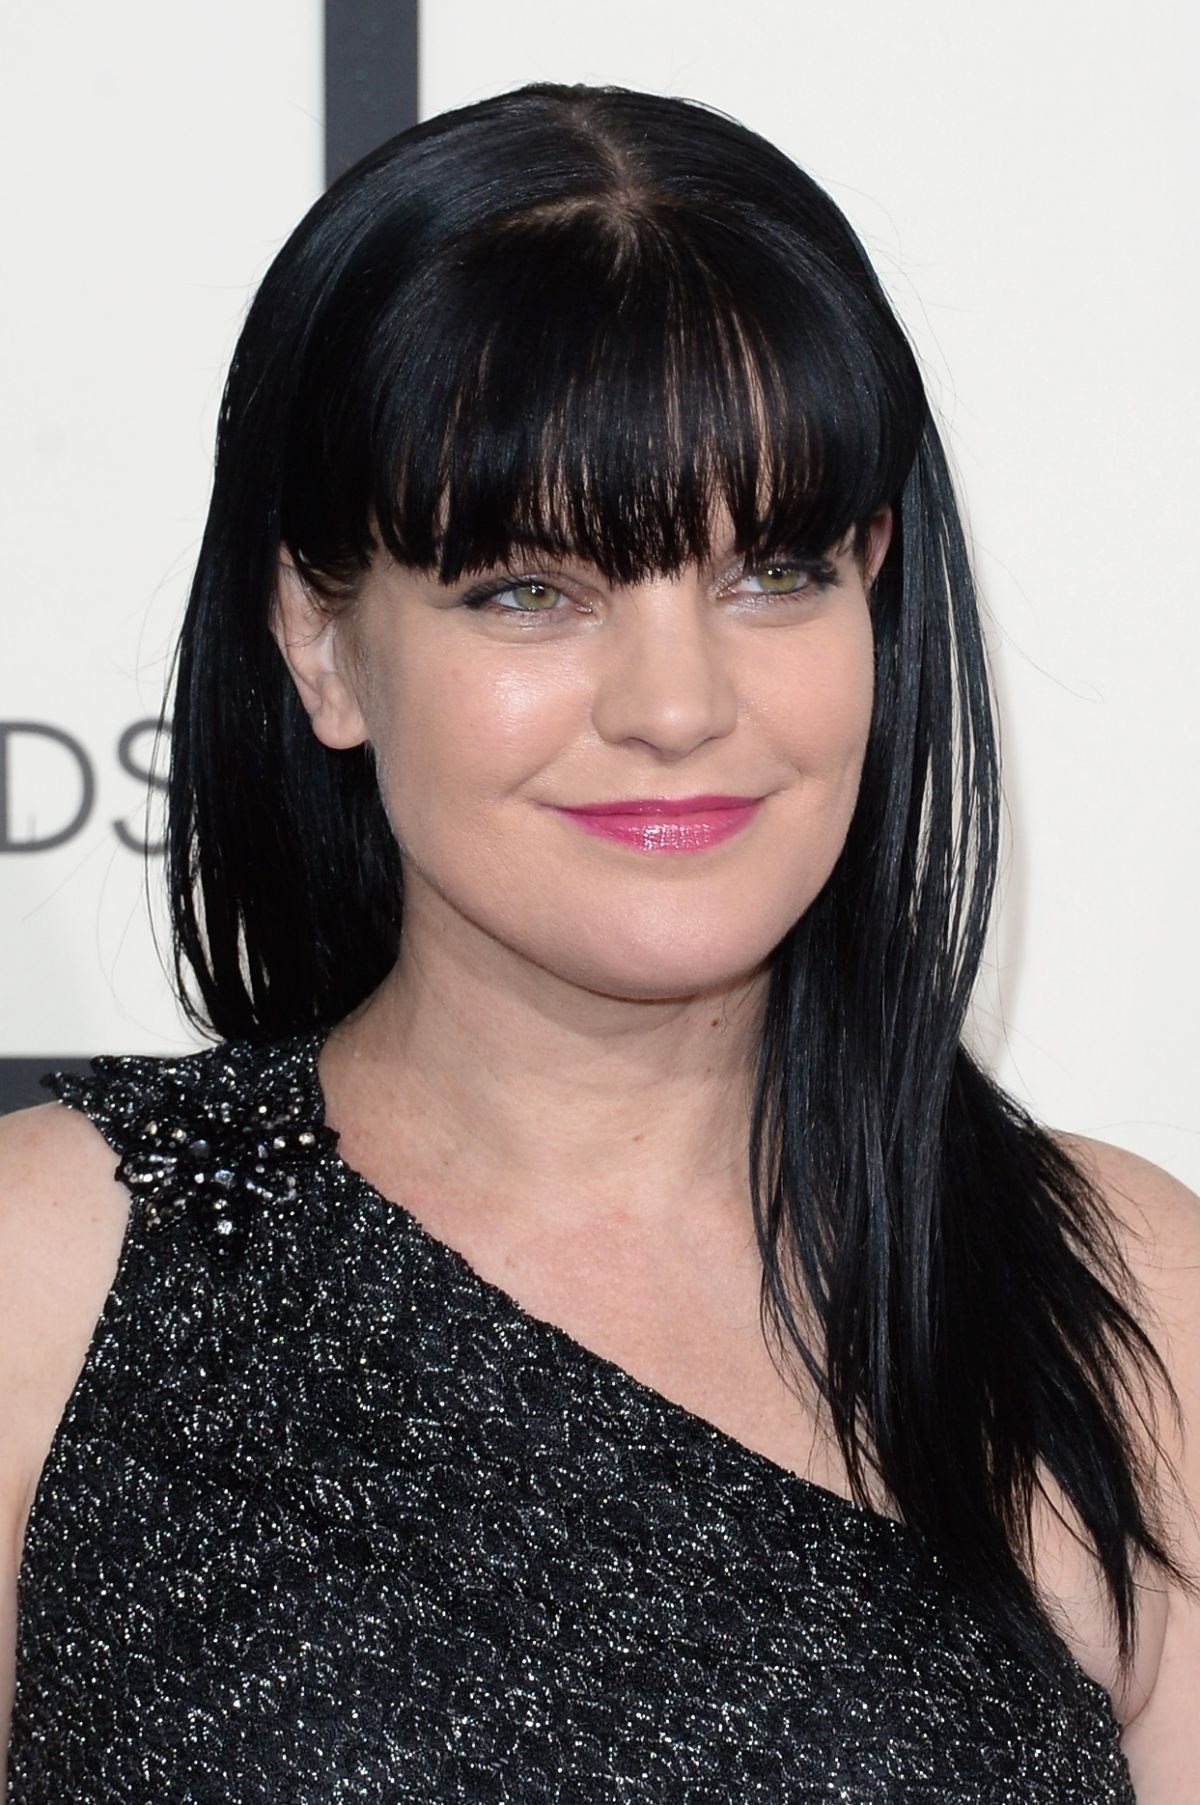 Pauley Perrette | Known people - famous people news and ...